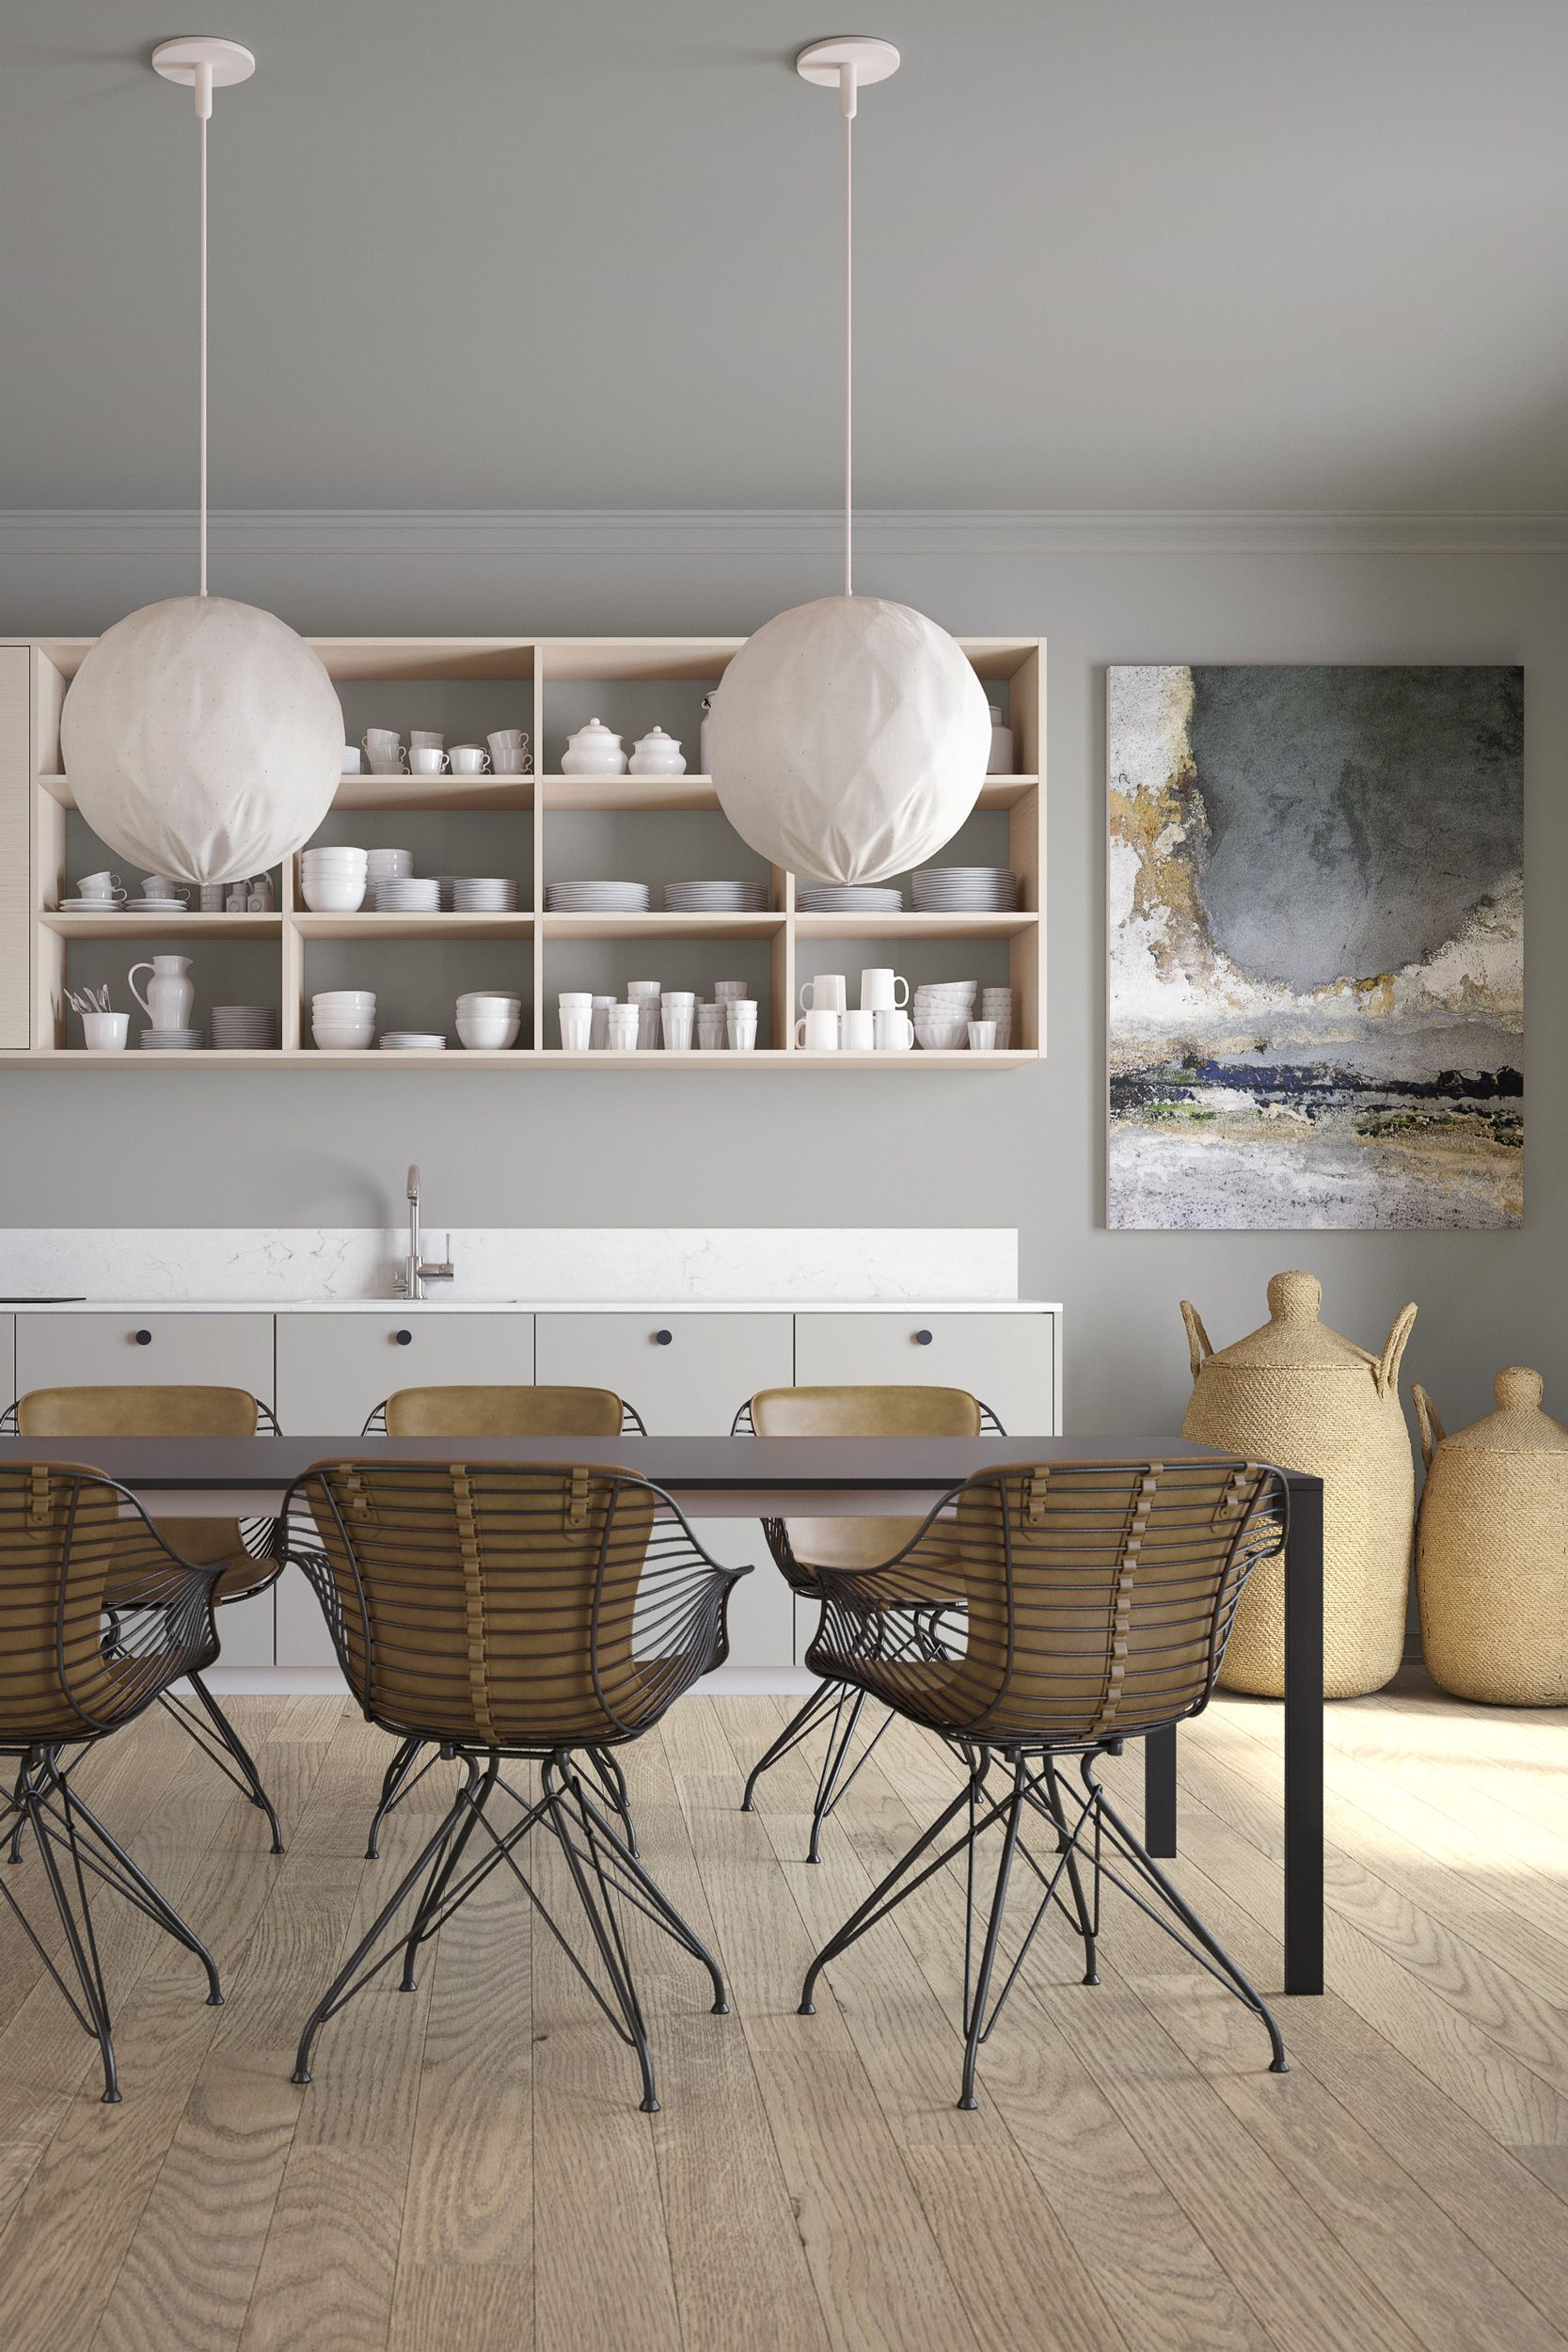 Carry Over Your Interior Design Choices Into The Adjoining Kitchen Space For A Seamless Feel